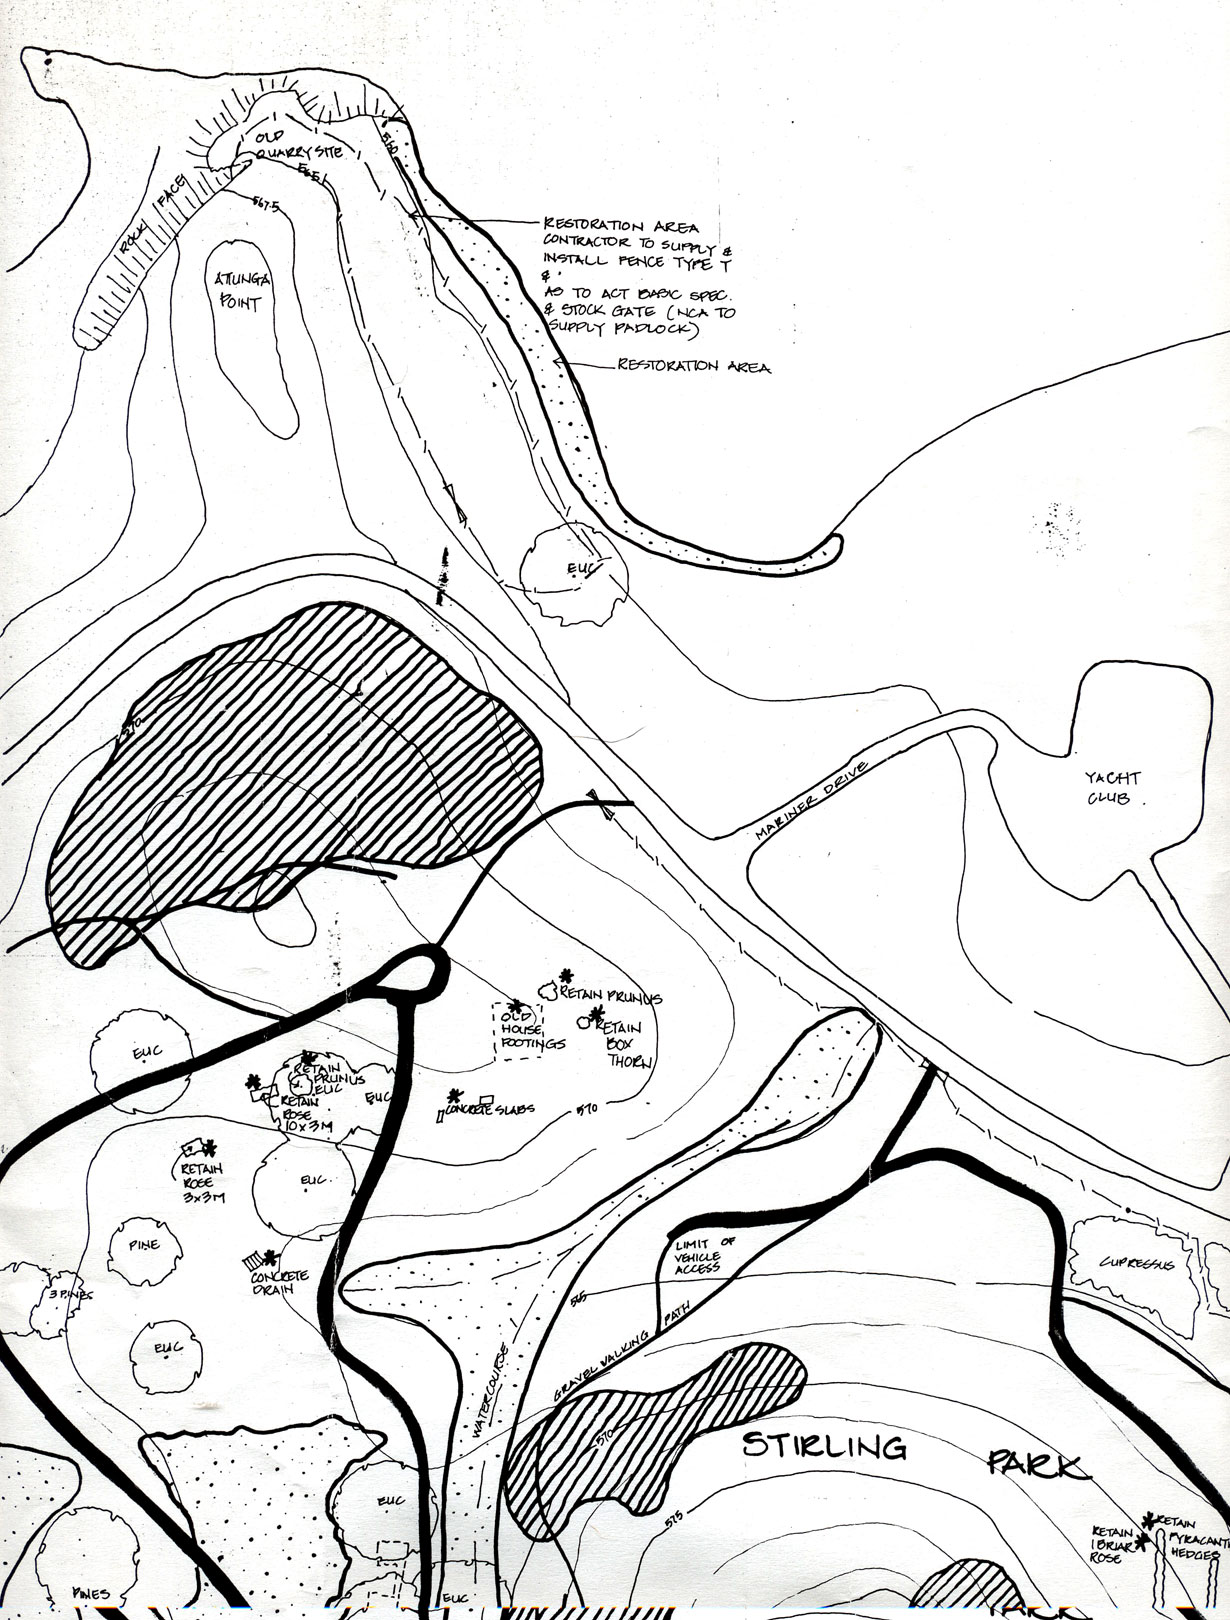 NCA Map Stirling Park